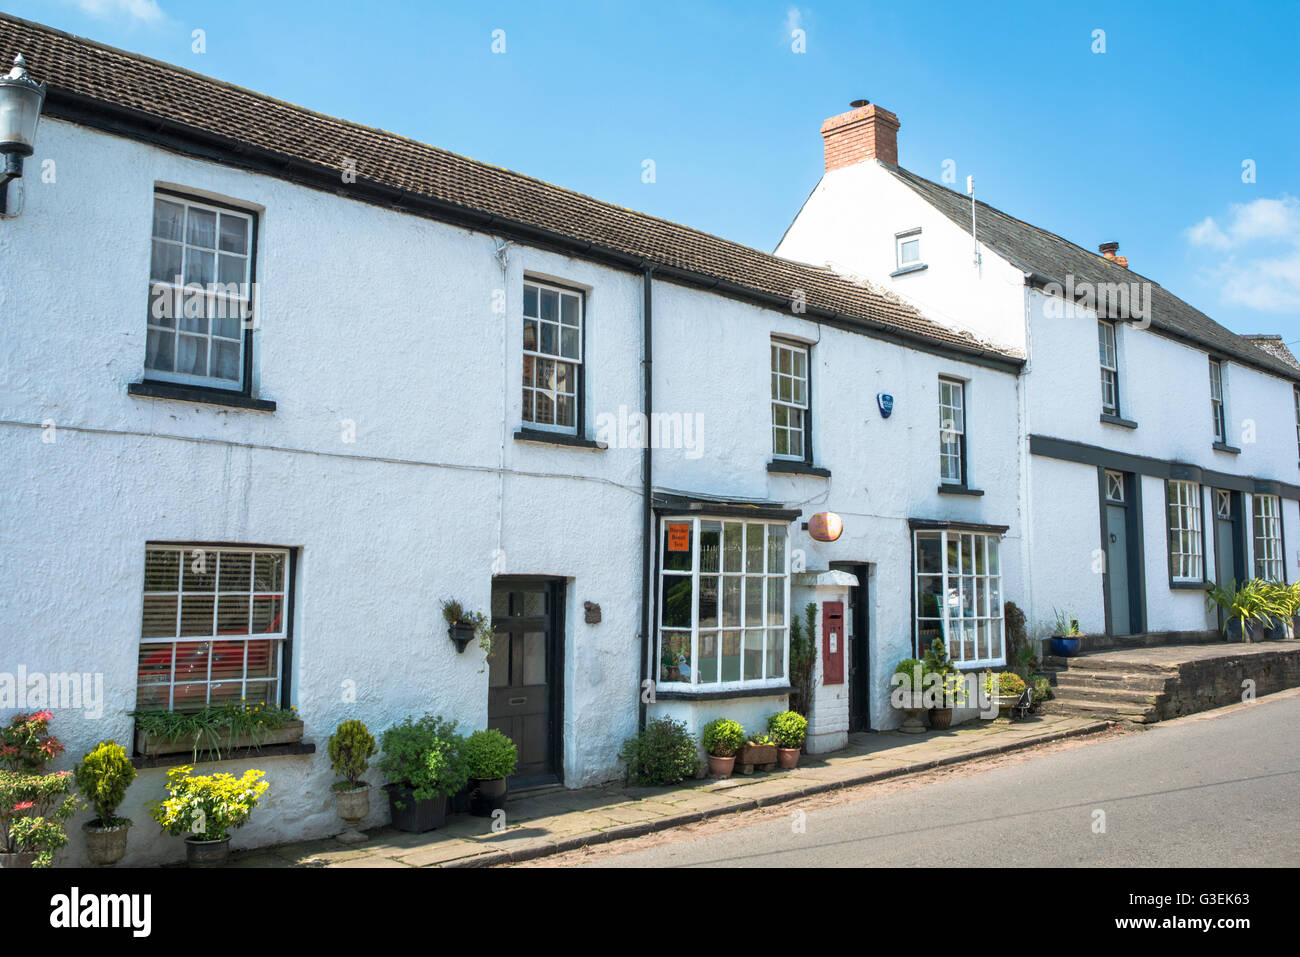 A village post office and local shop on a summer day. - Stock Image